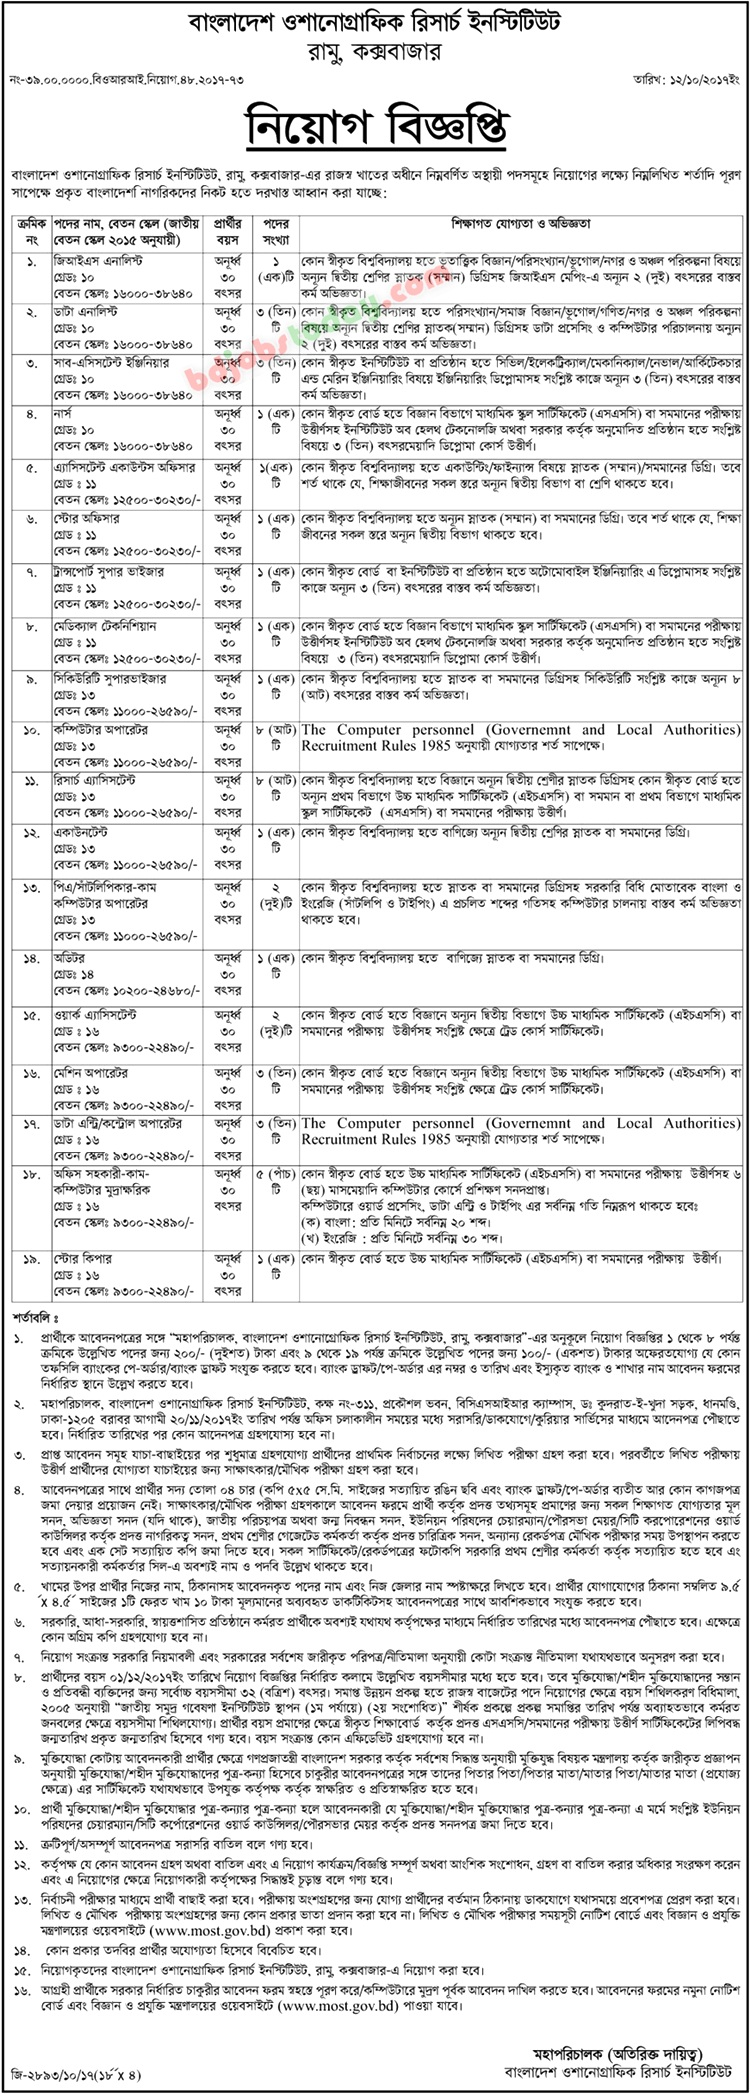 Bangladesh Oceanographic Research Institute jobs